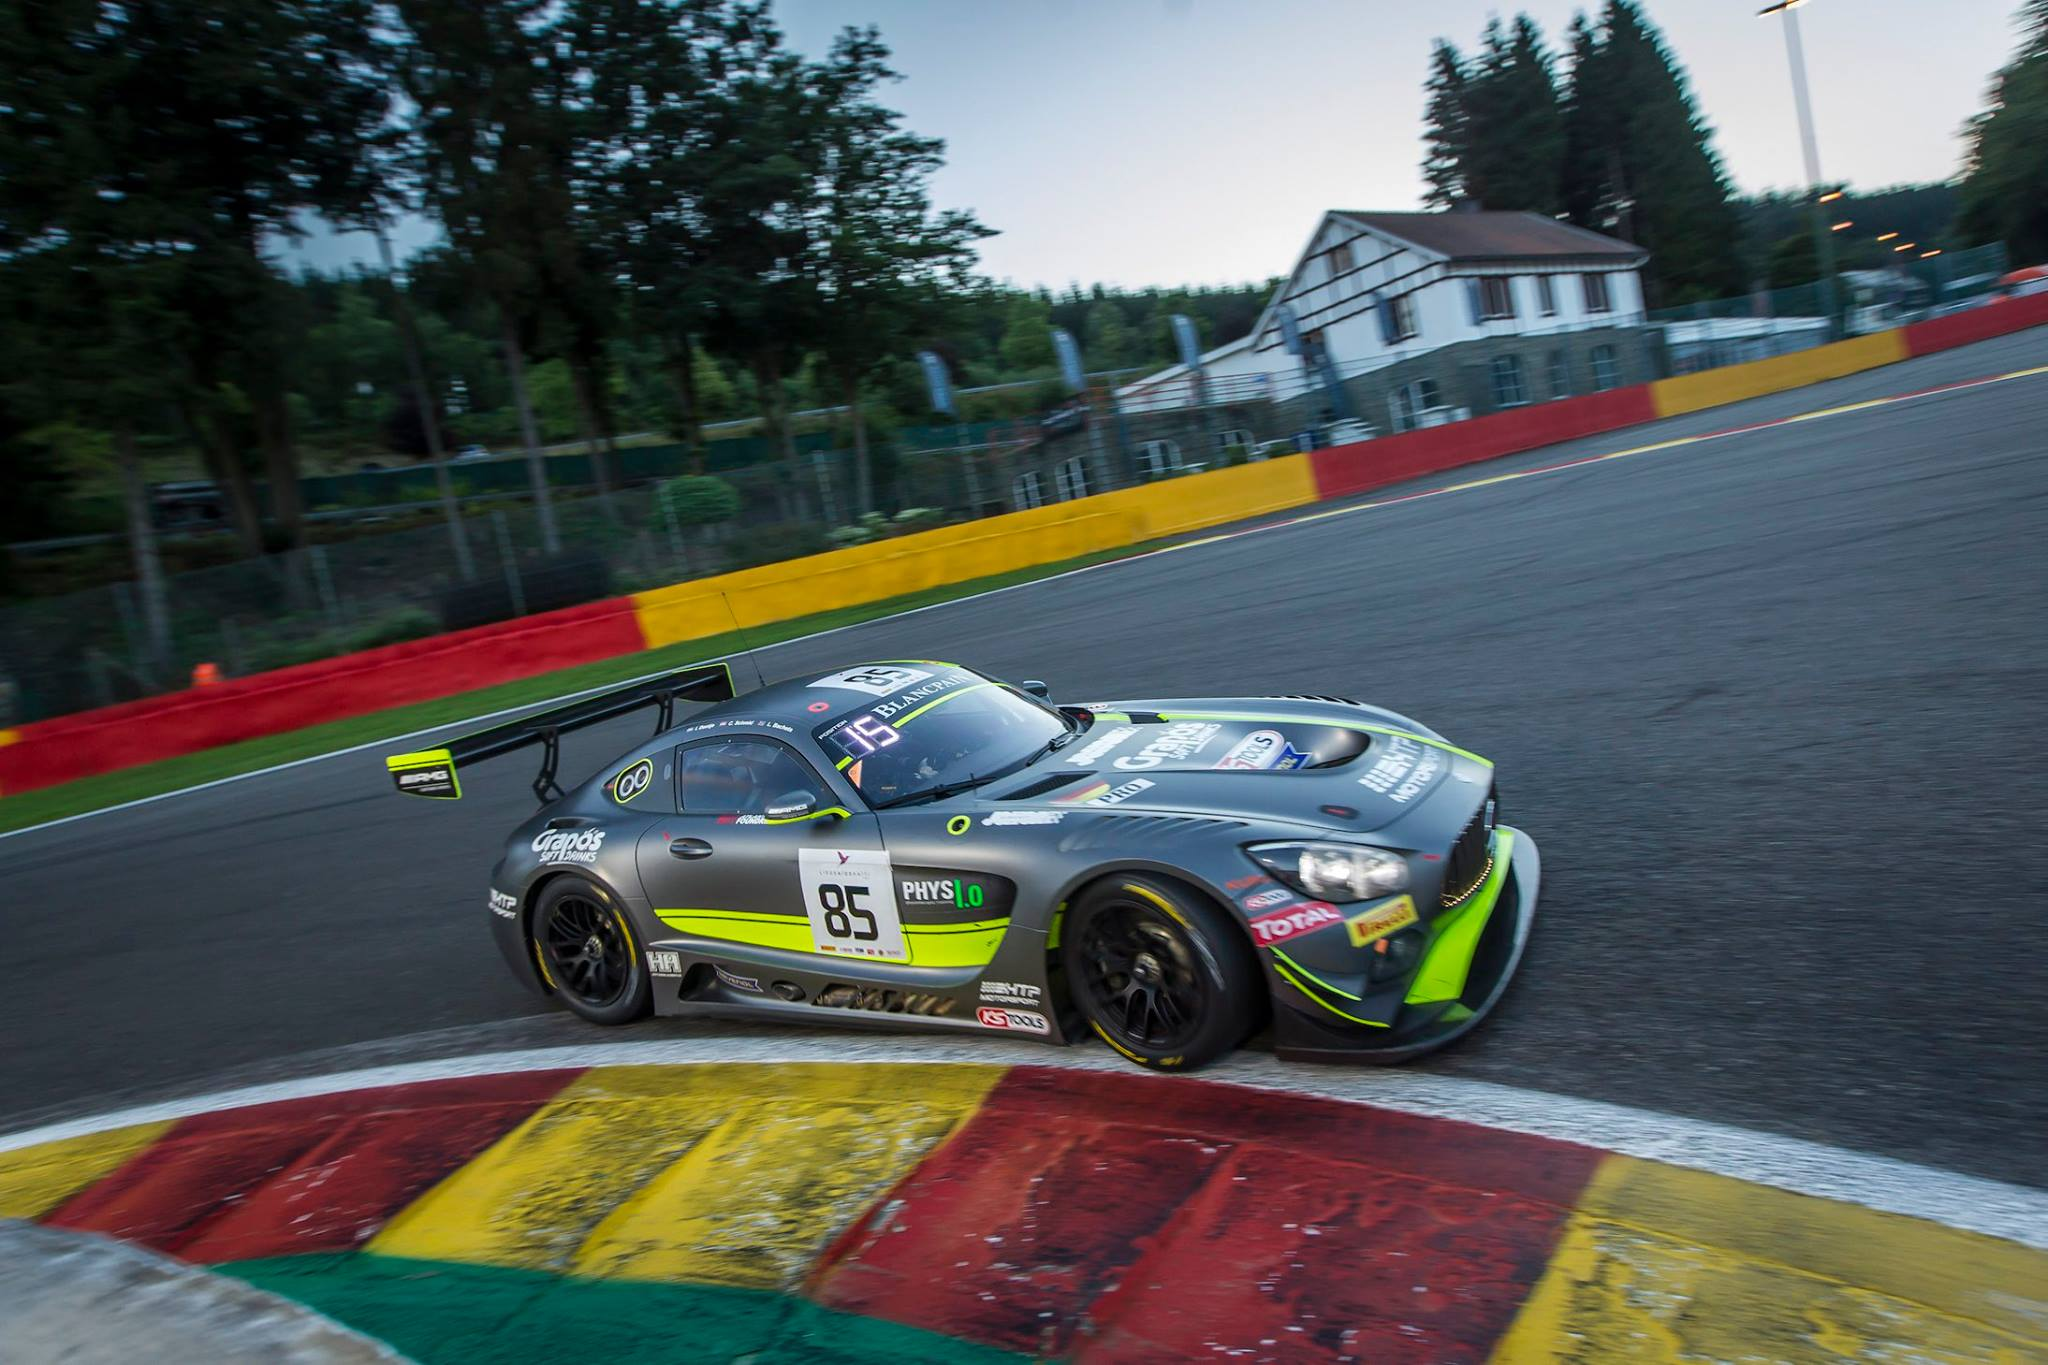 24 Hours of Spa: Mercedes-AMG Wins Pole by Filling Top Six Spots